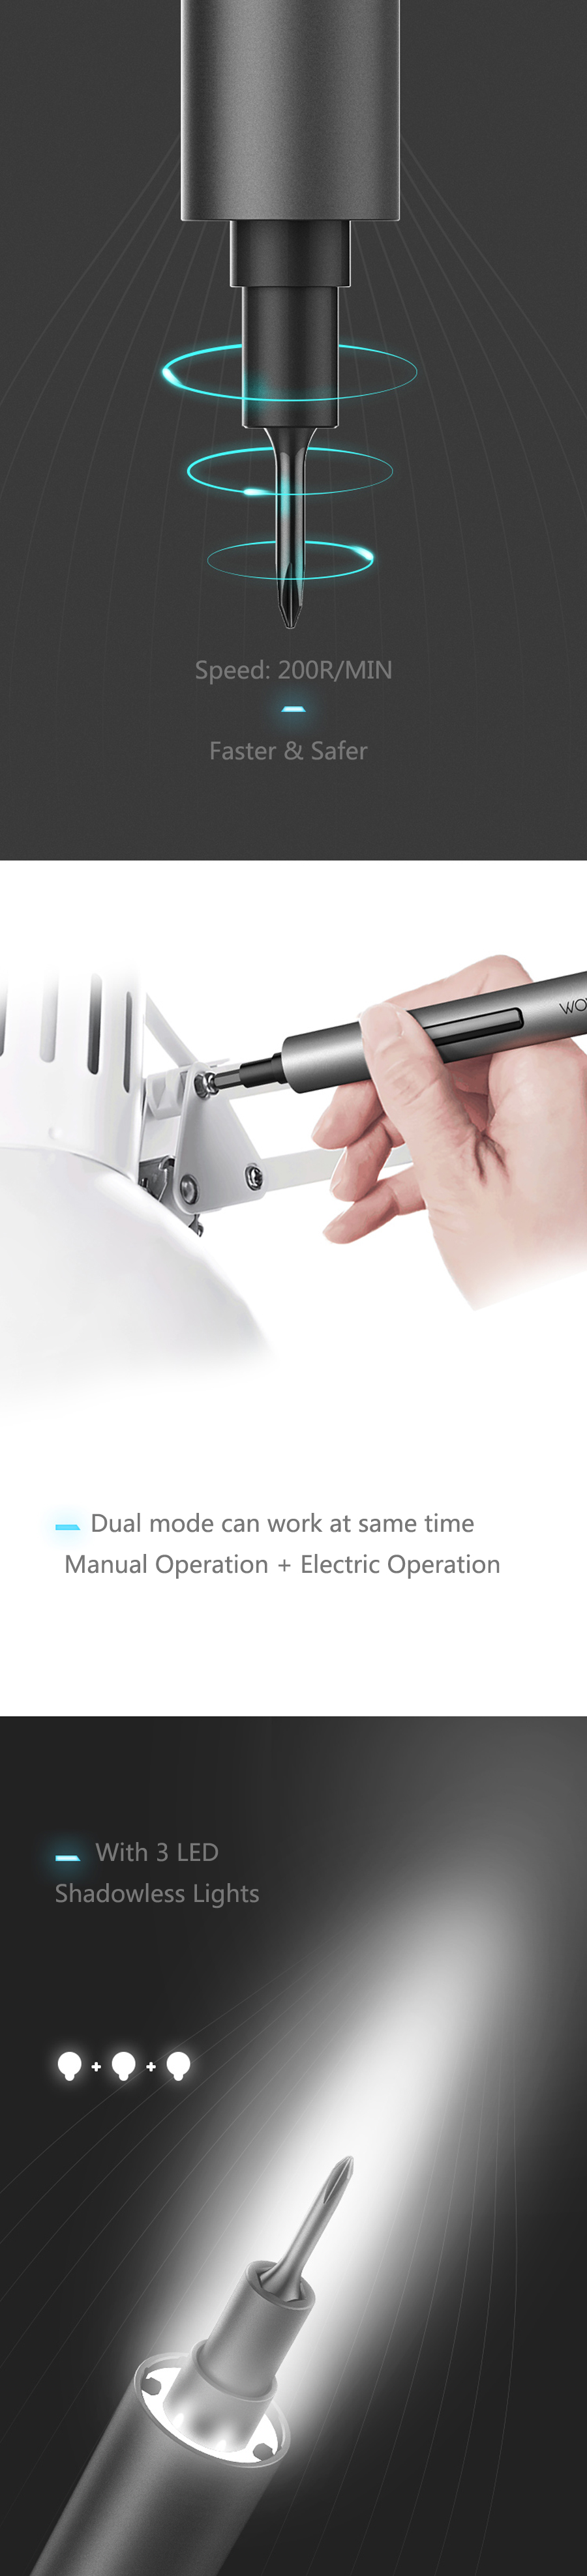 Wowstick 1F+ 64 In 1 Cordless Electric Screwdriver 3